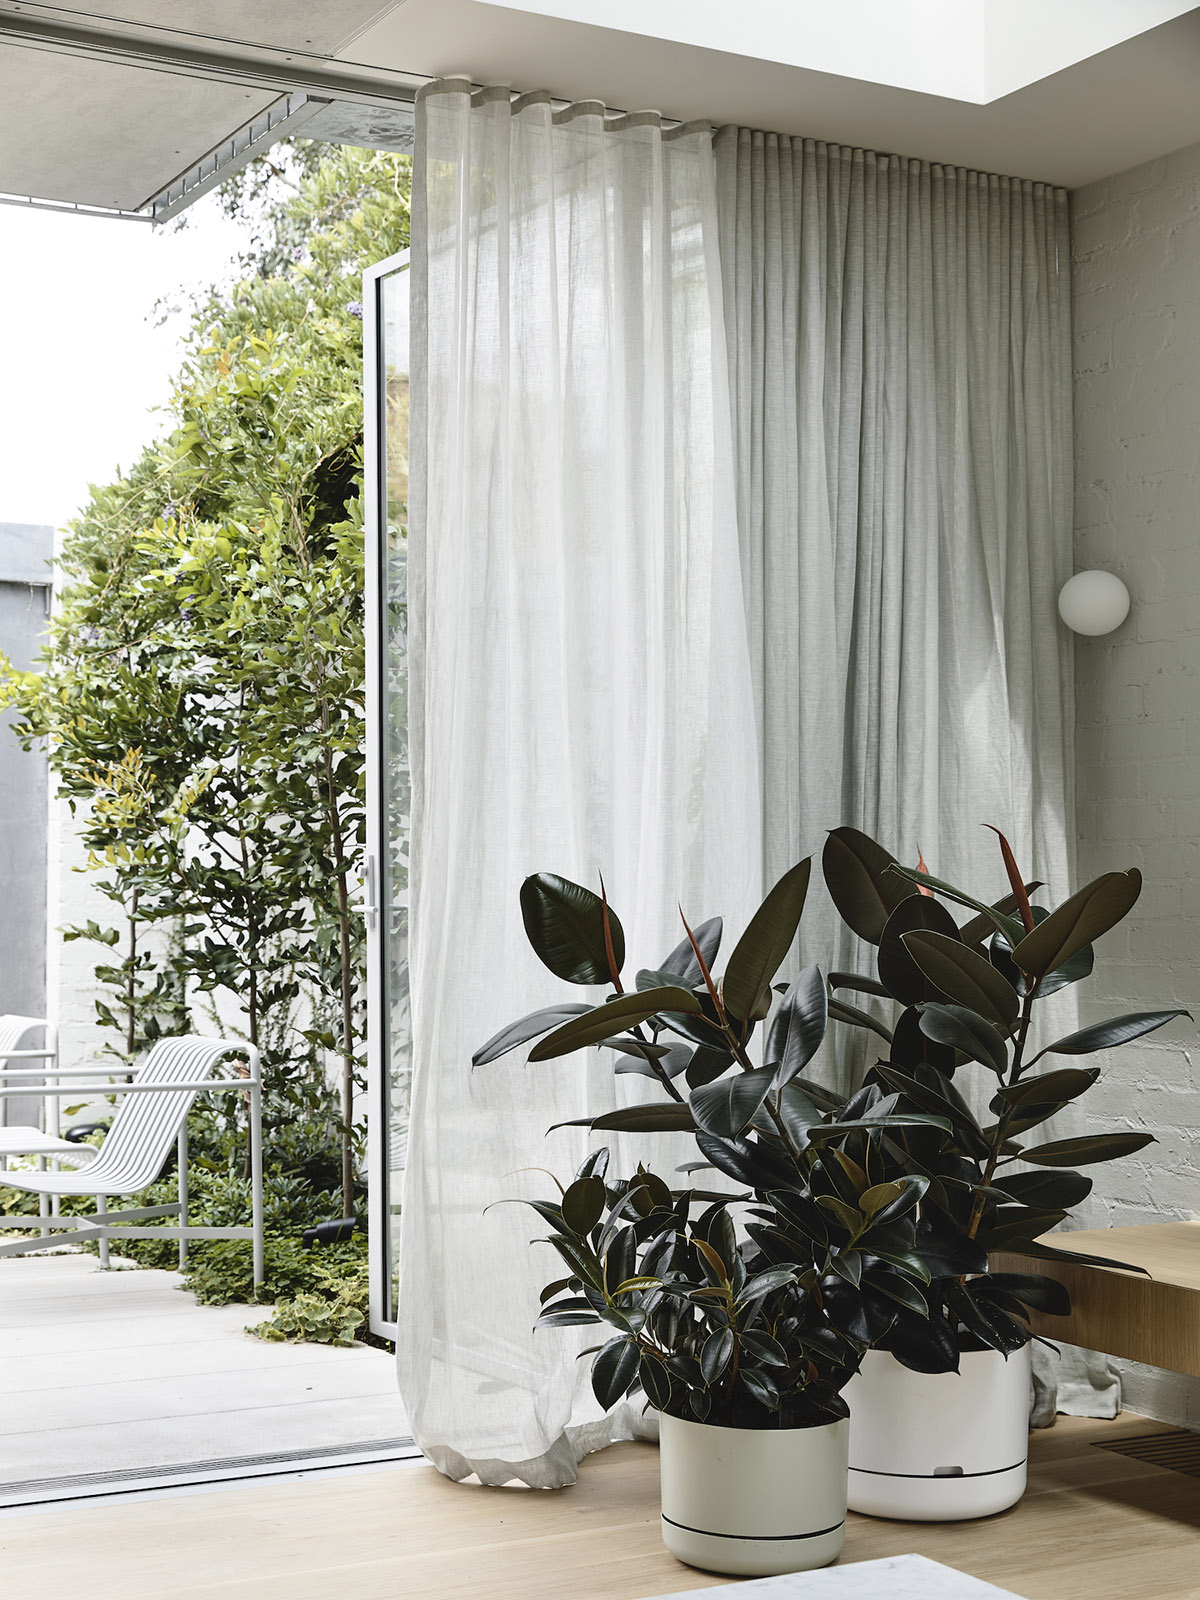 est-living-rob-kennon-architects-fitzroy-north-02-13